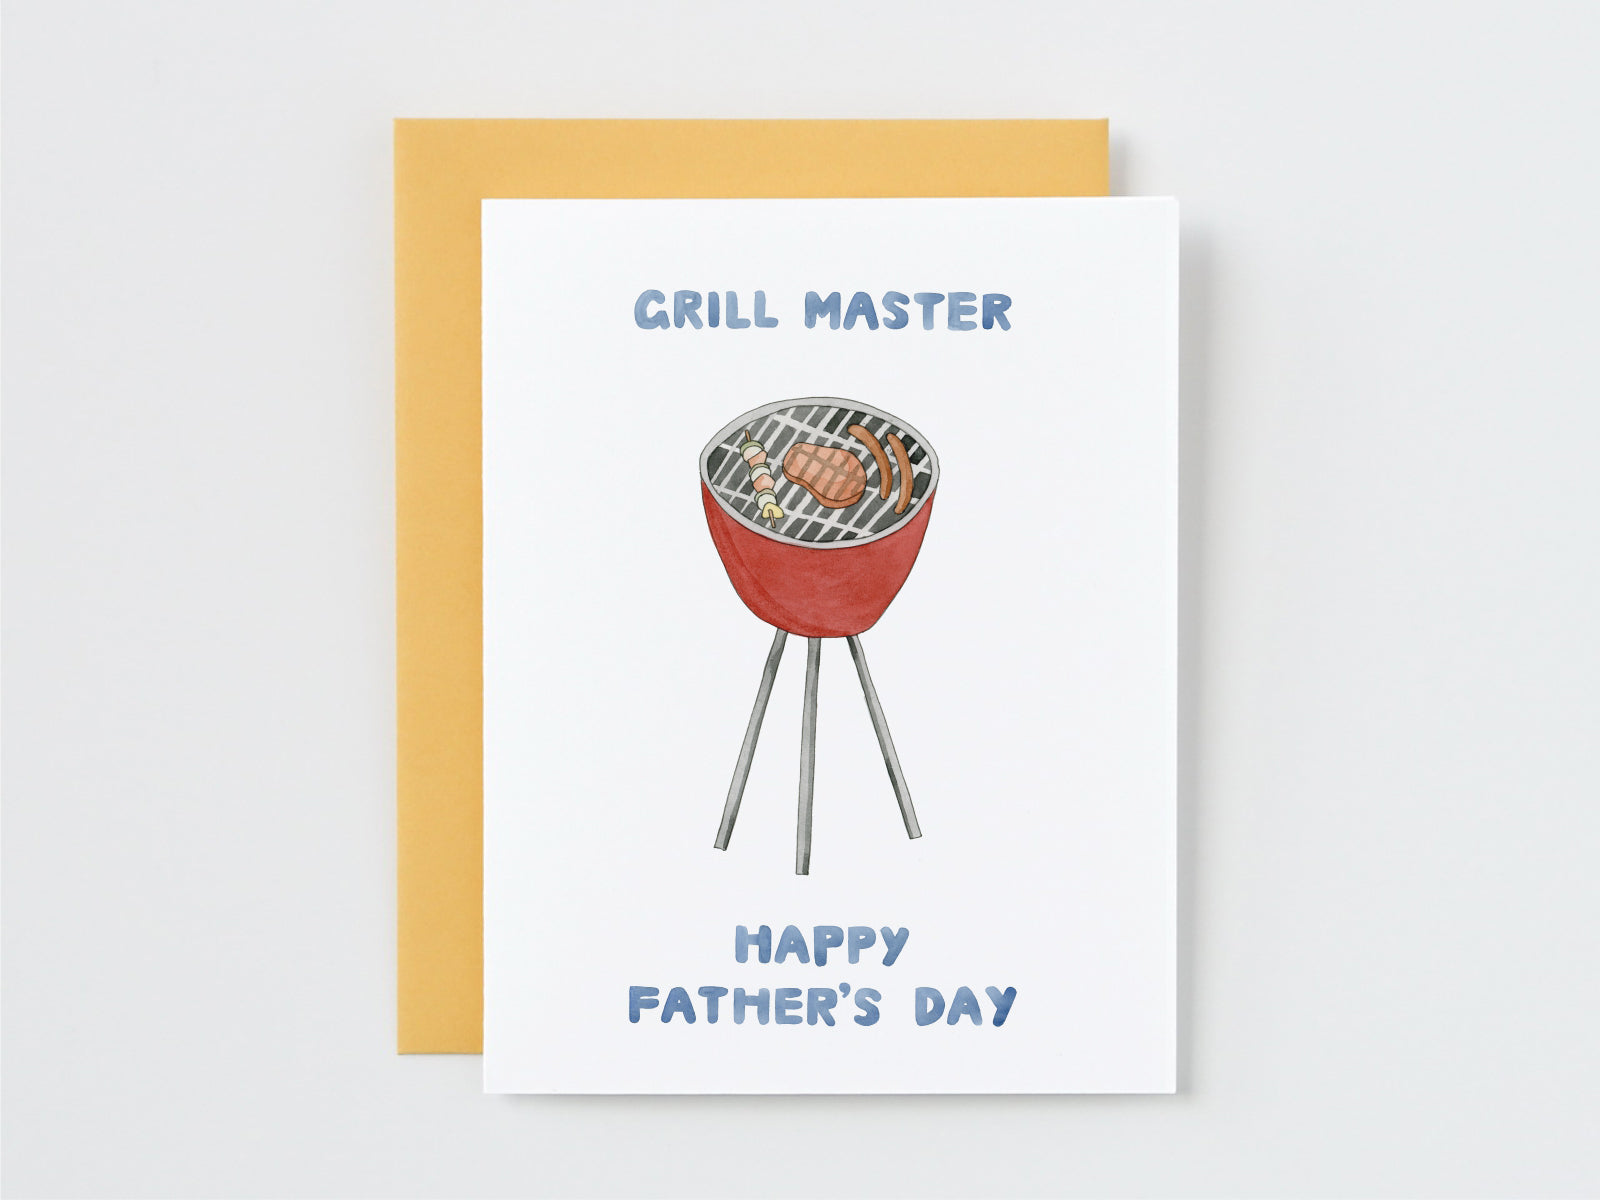 Grill Master Father's Day Card